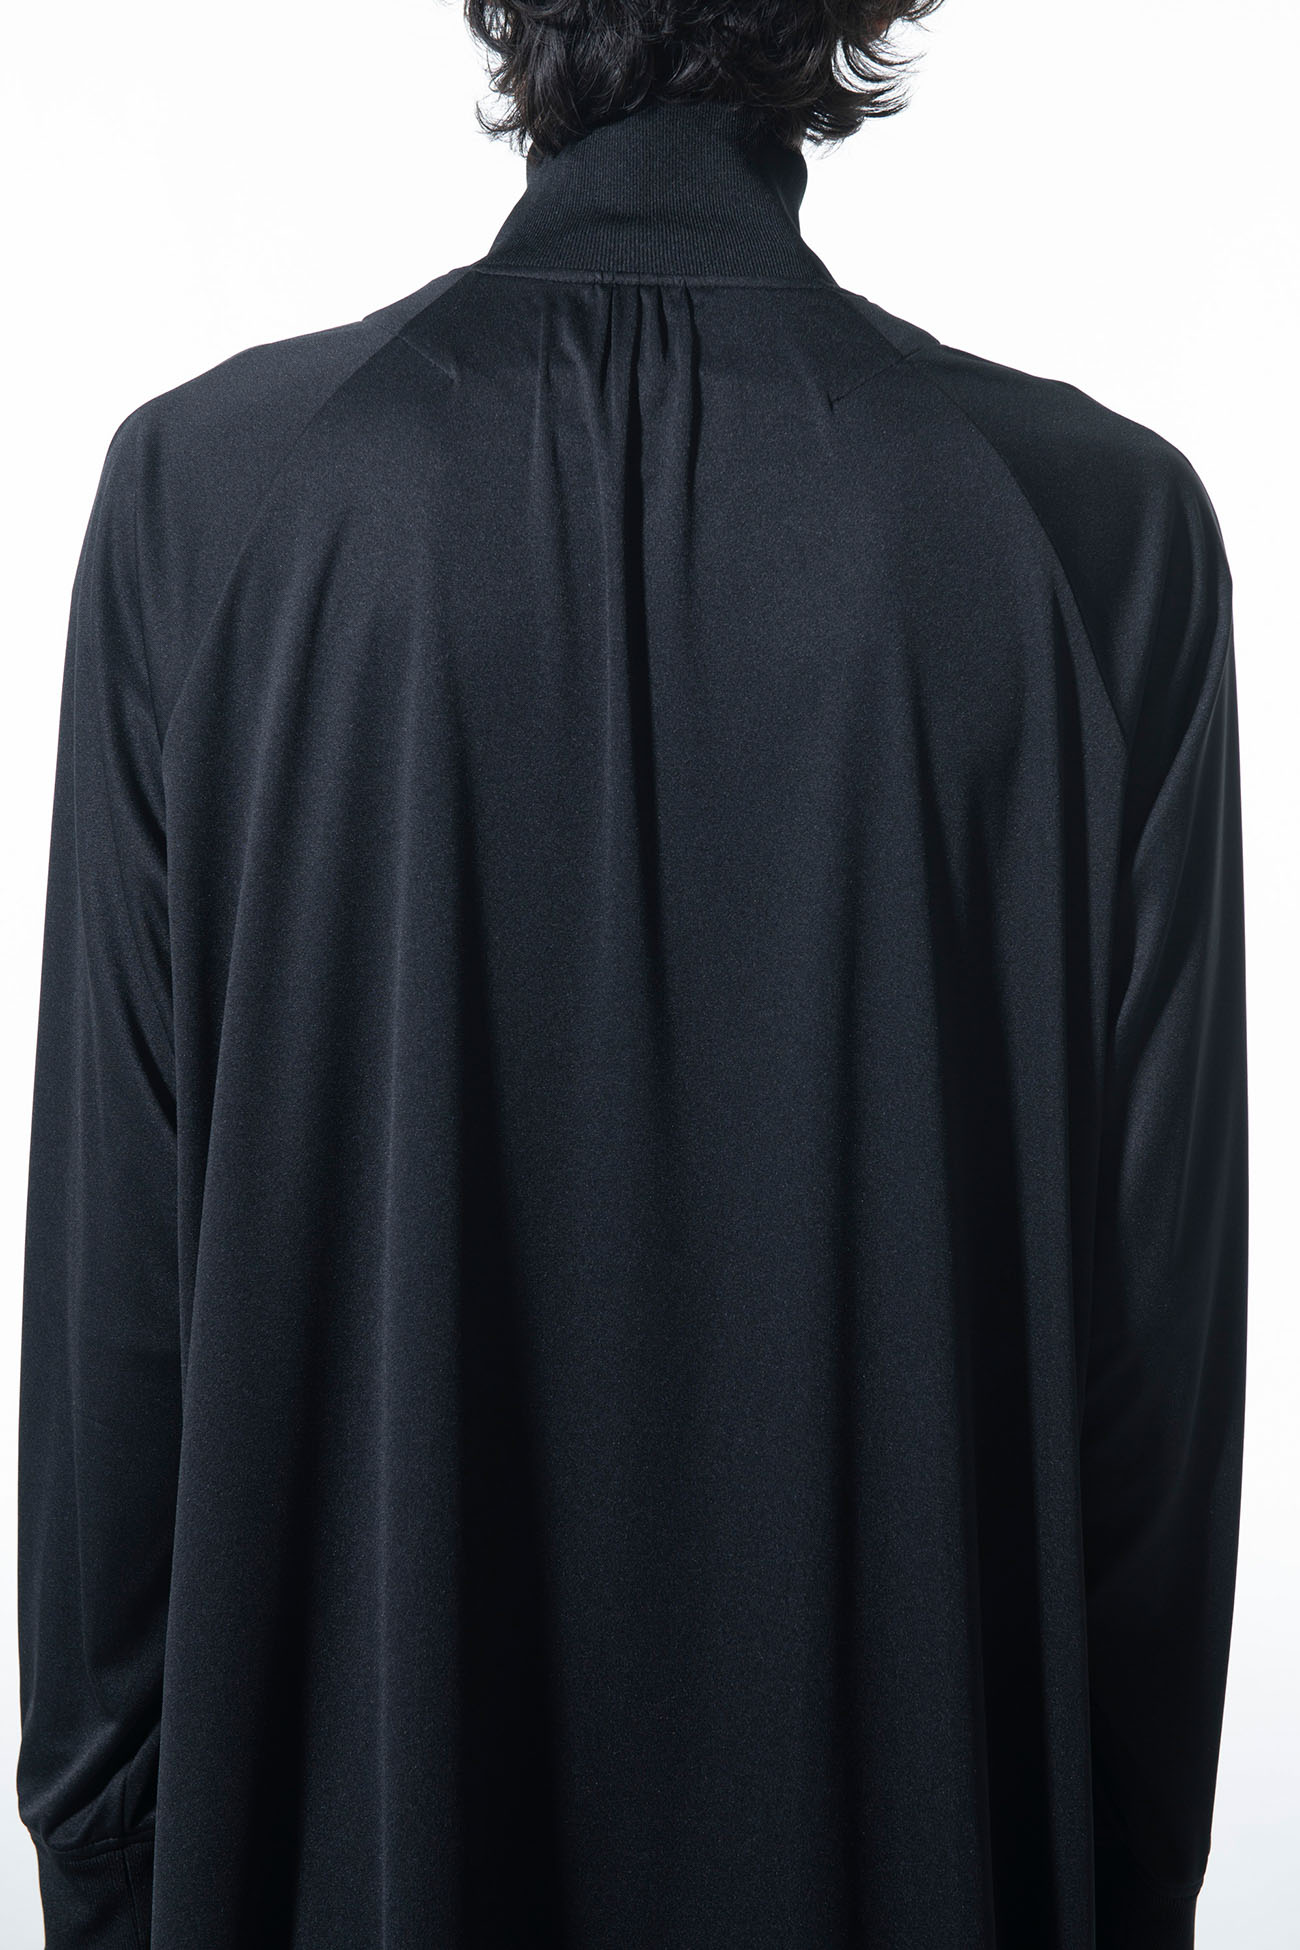 Thin Smooth Jersey Long Tail Track Jacket